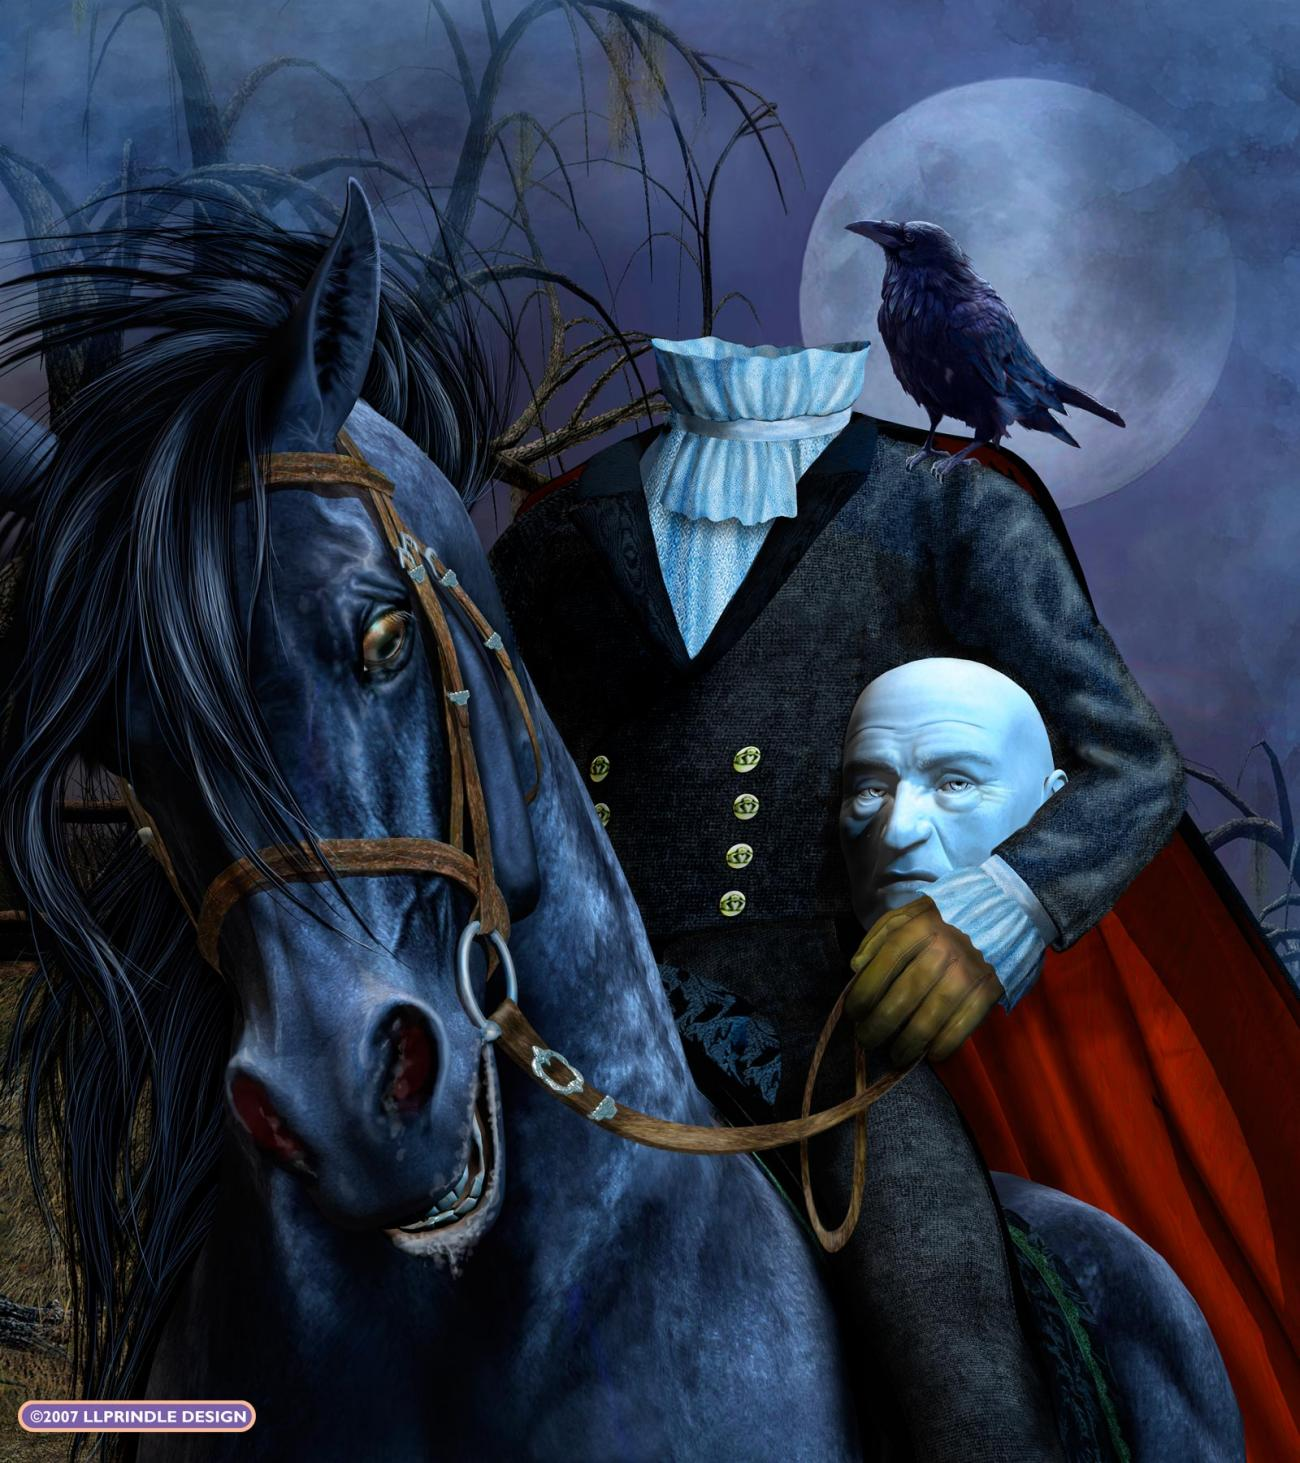 Happy Halloween! (The Headless Horseman)